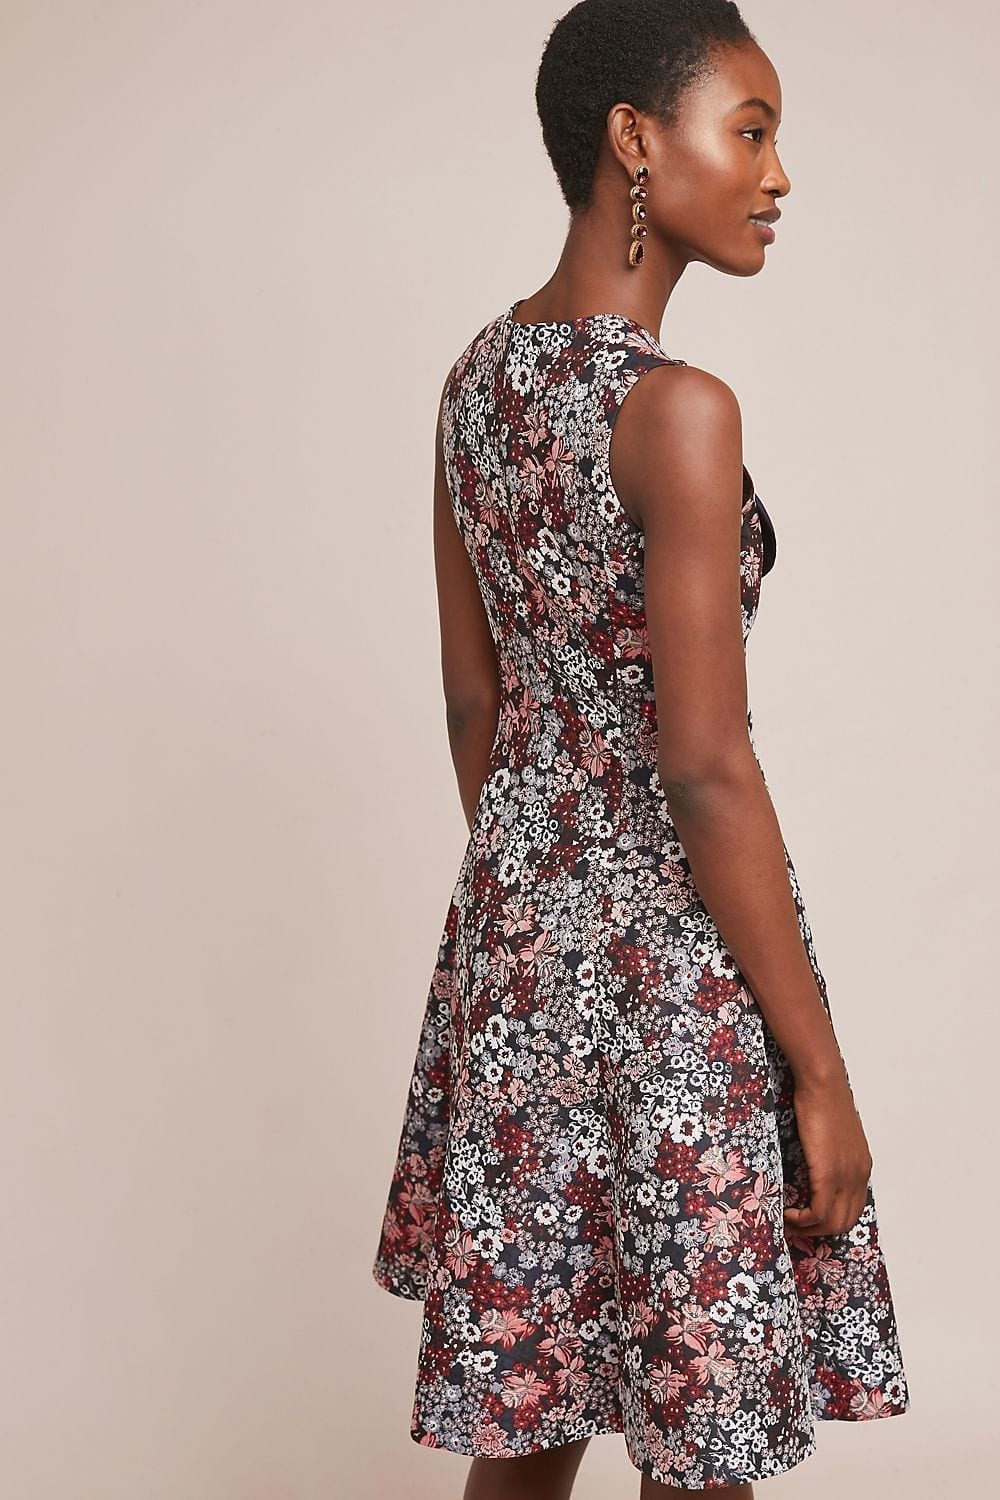 28d8fd2e72b2 ANTHROPOLOGIE Bow-Tied Red / Floral Printed Dress - We Select Dresses